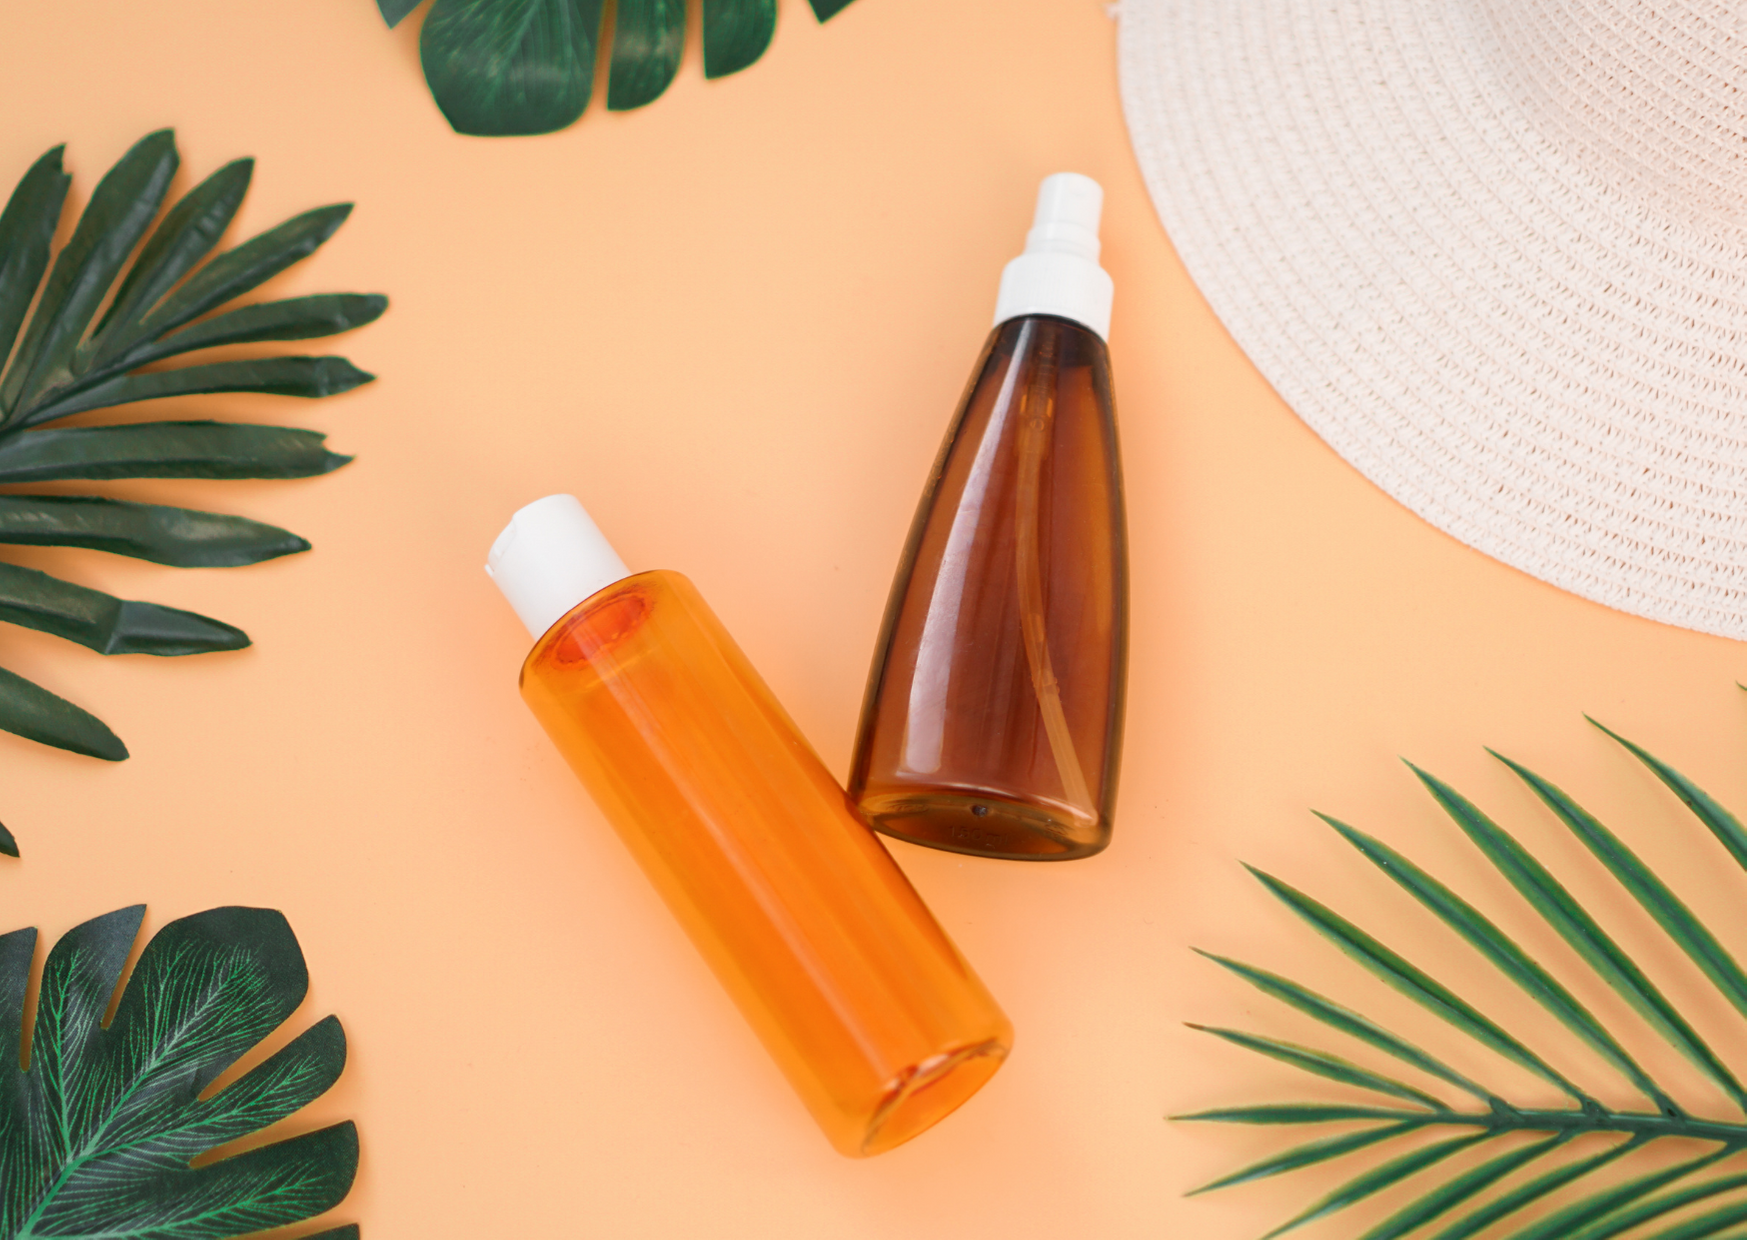 image of two spray bottles with coral background with palm leaves